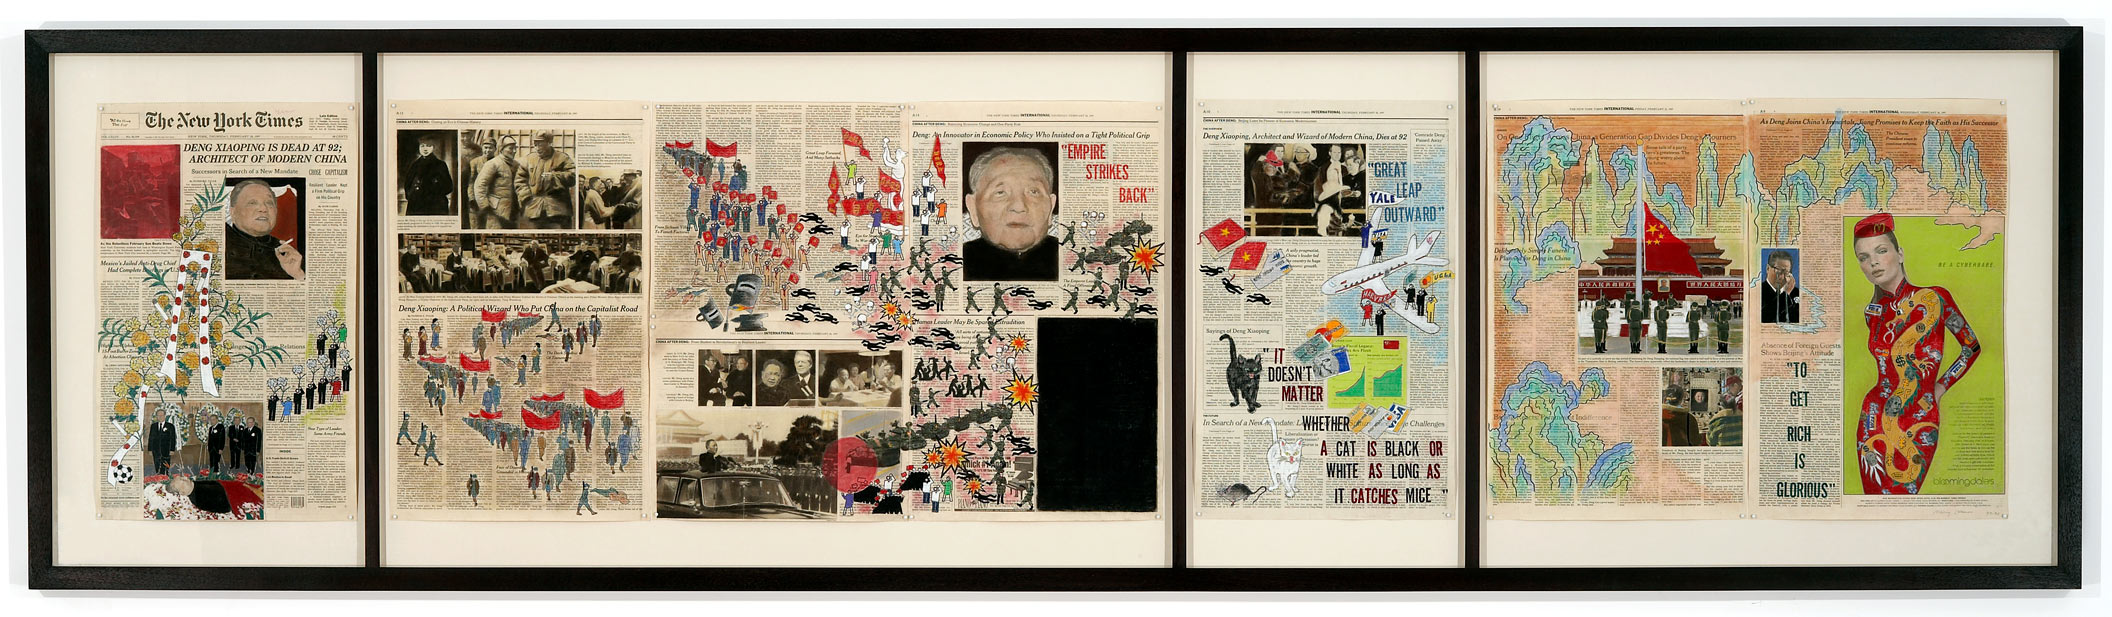 "Deng Xiaoping Scroll  1998 • ink and pastel on newspaper • 22"" x 96.25"